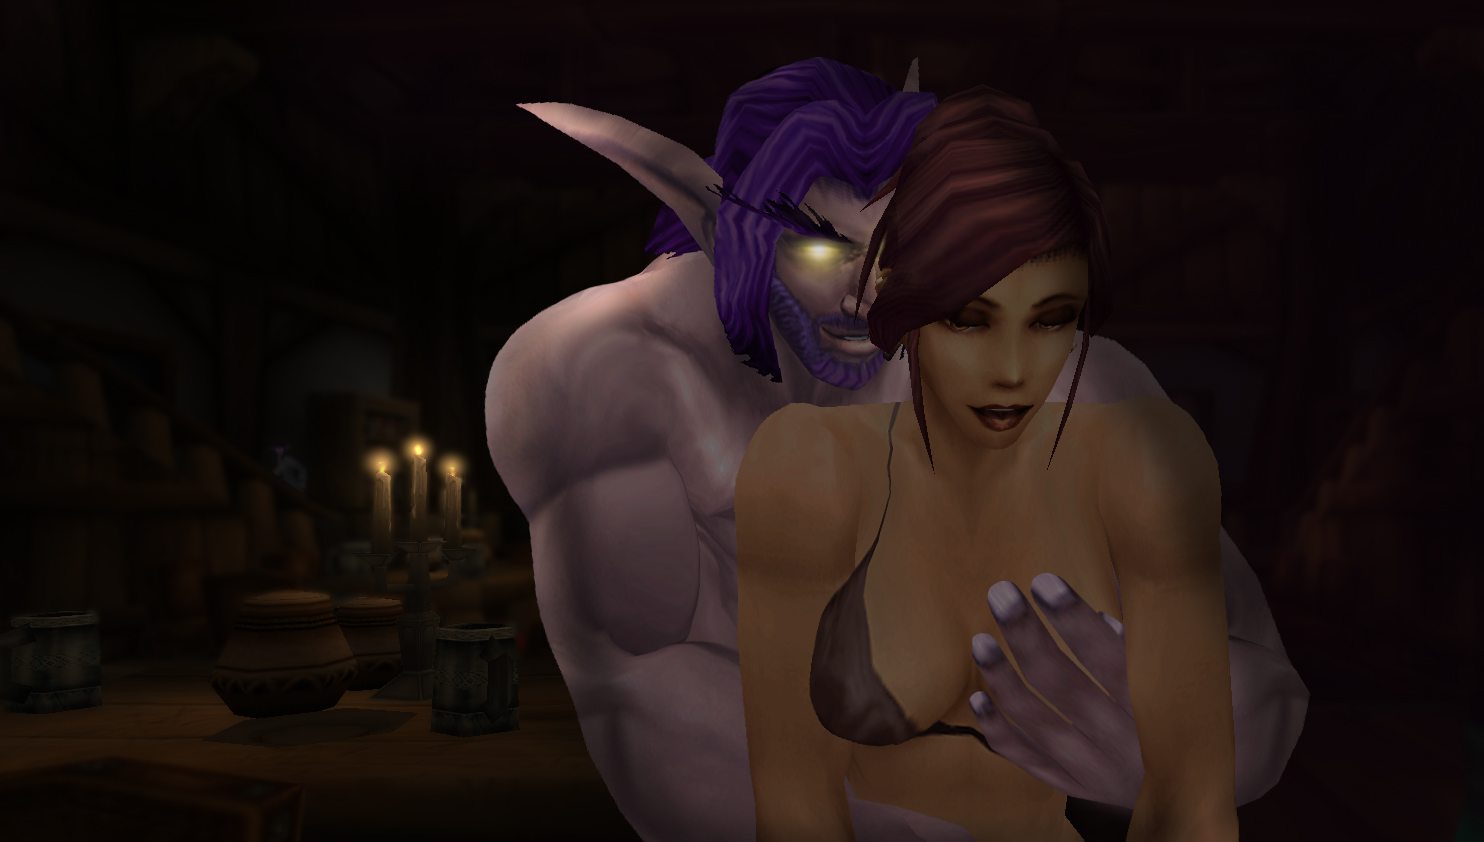 Night elf and human hentai sex video